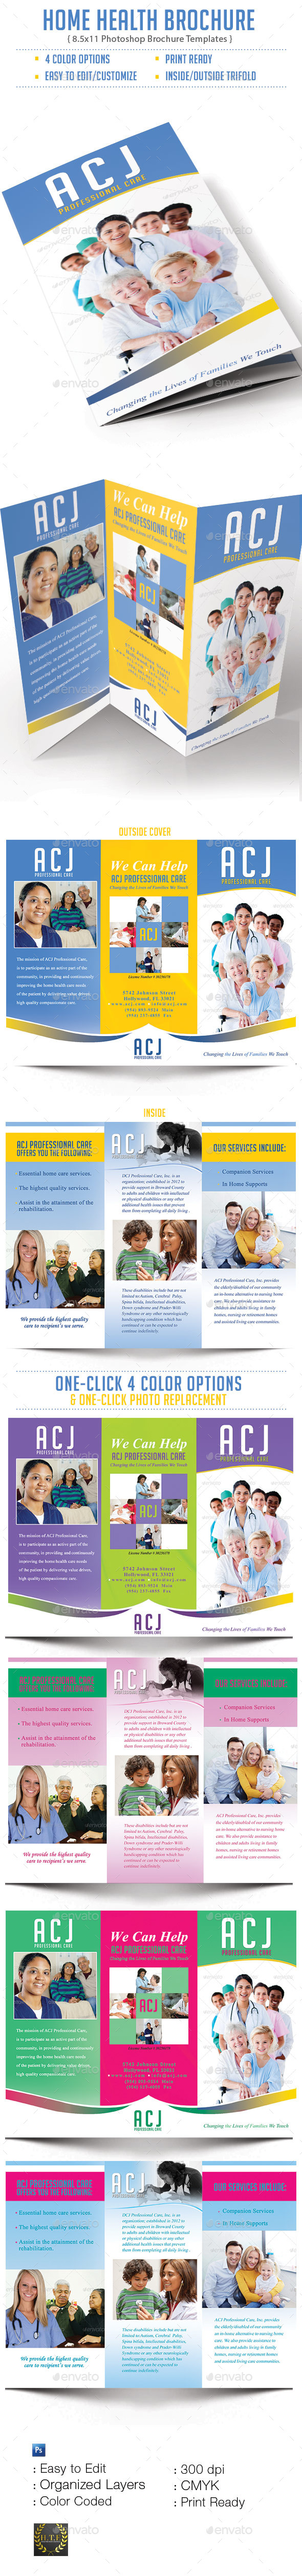 Home Health Brochure - Brochures Print Templates